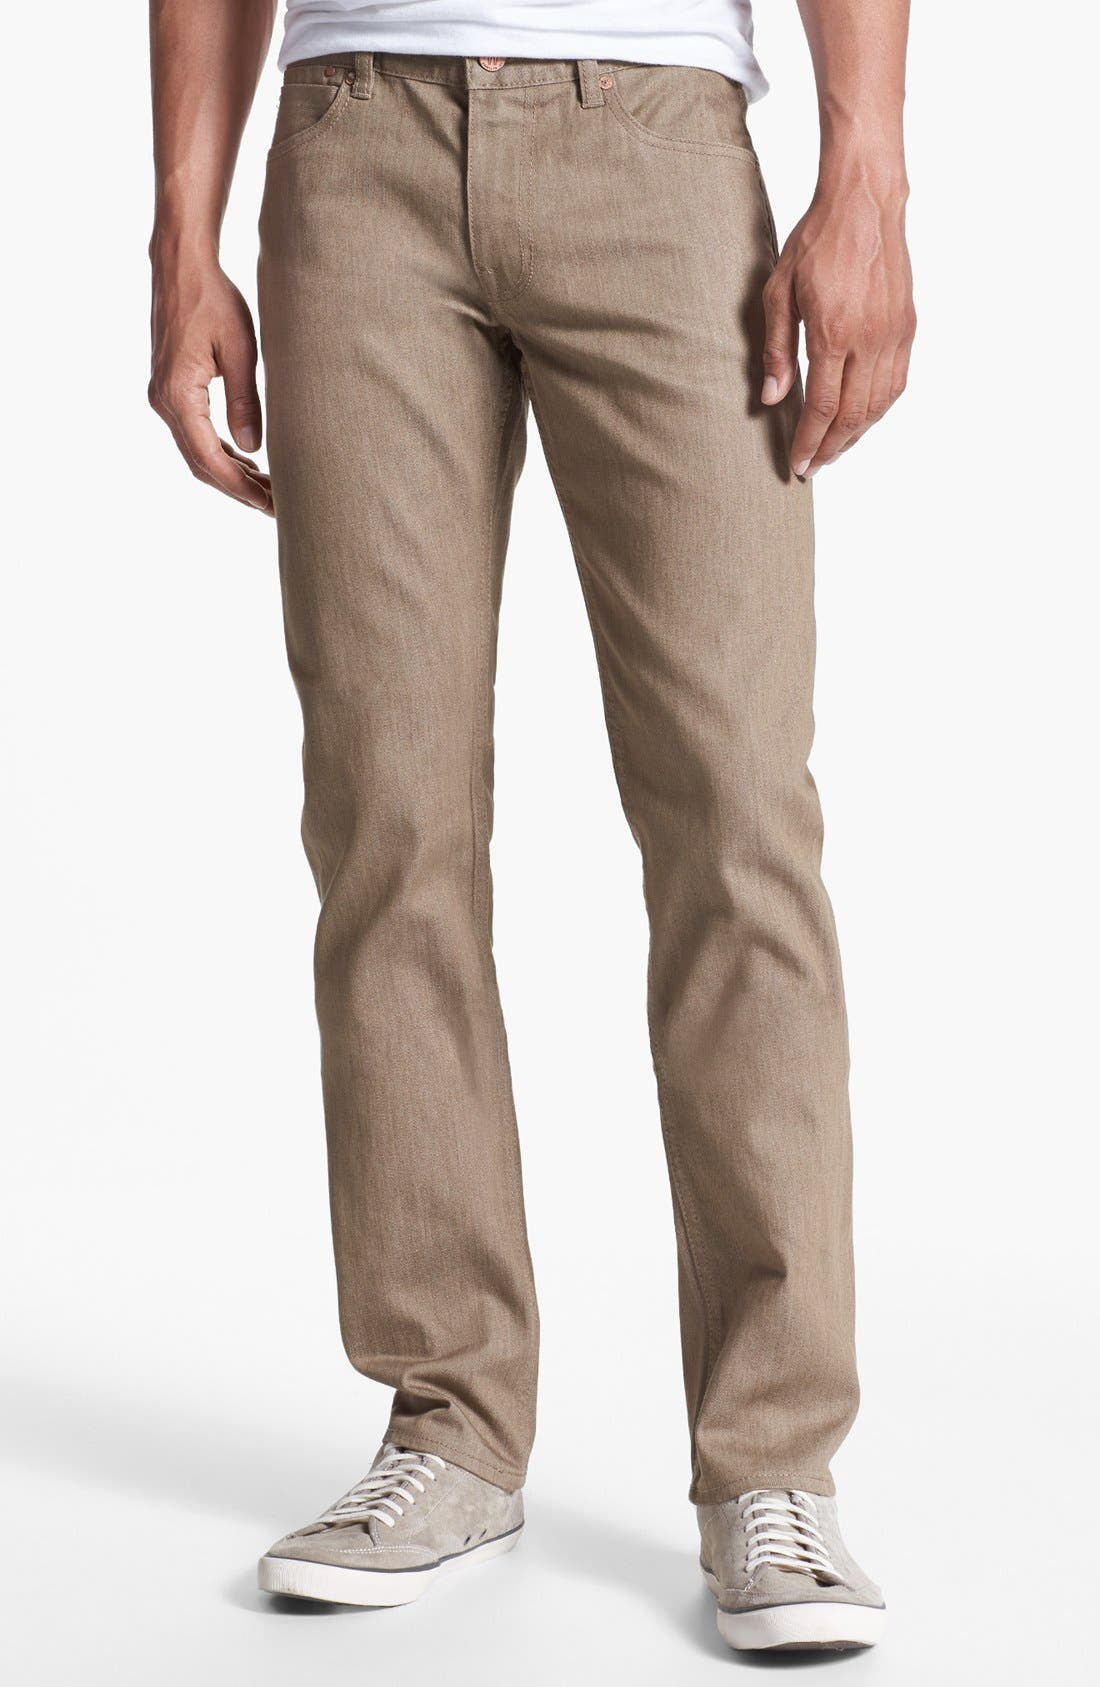 Alternate Image 1 Selected - Williamsburg Garment Company 'S. 4th Street' Skinny Stretch Fit Jeans (Raw Tan)